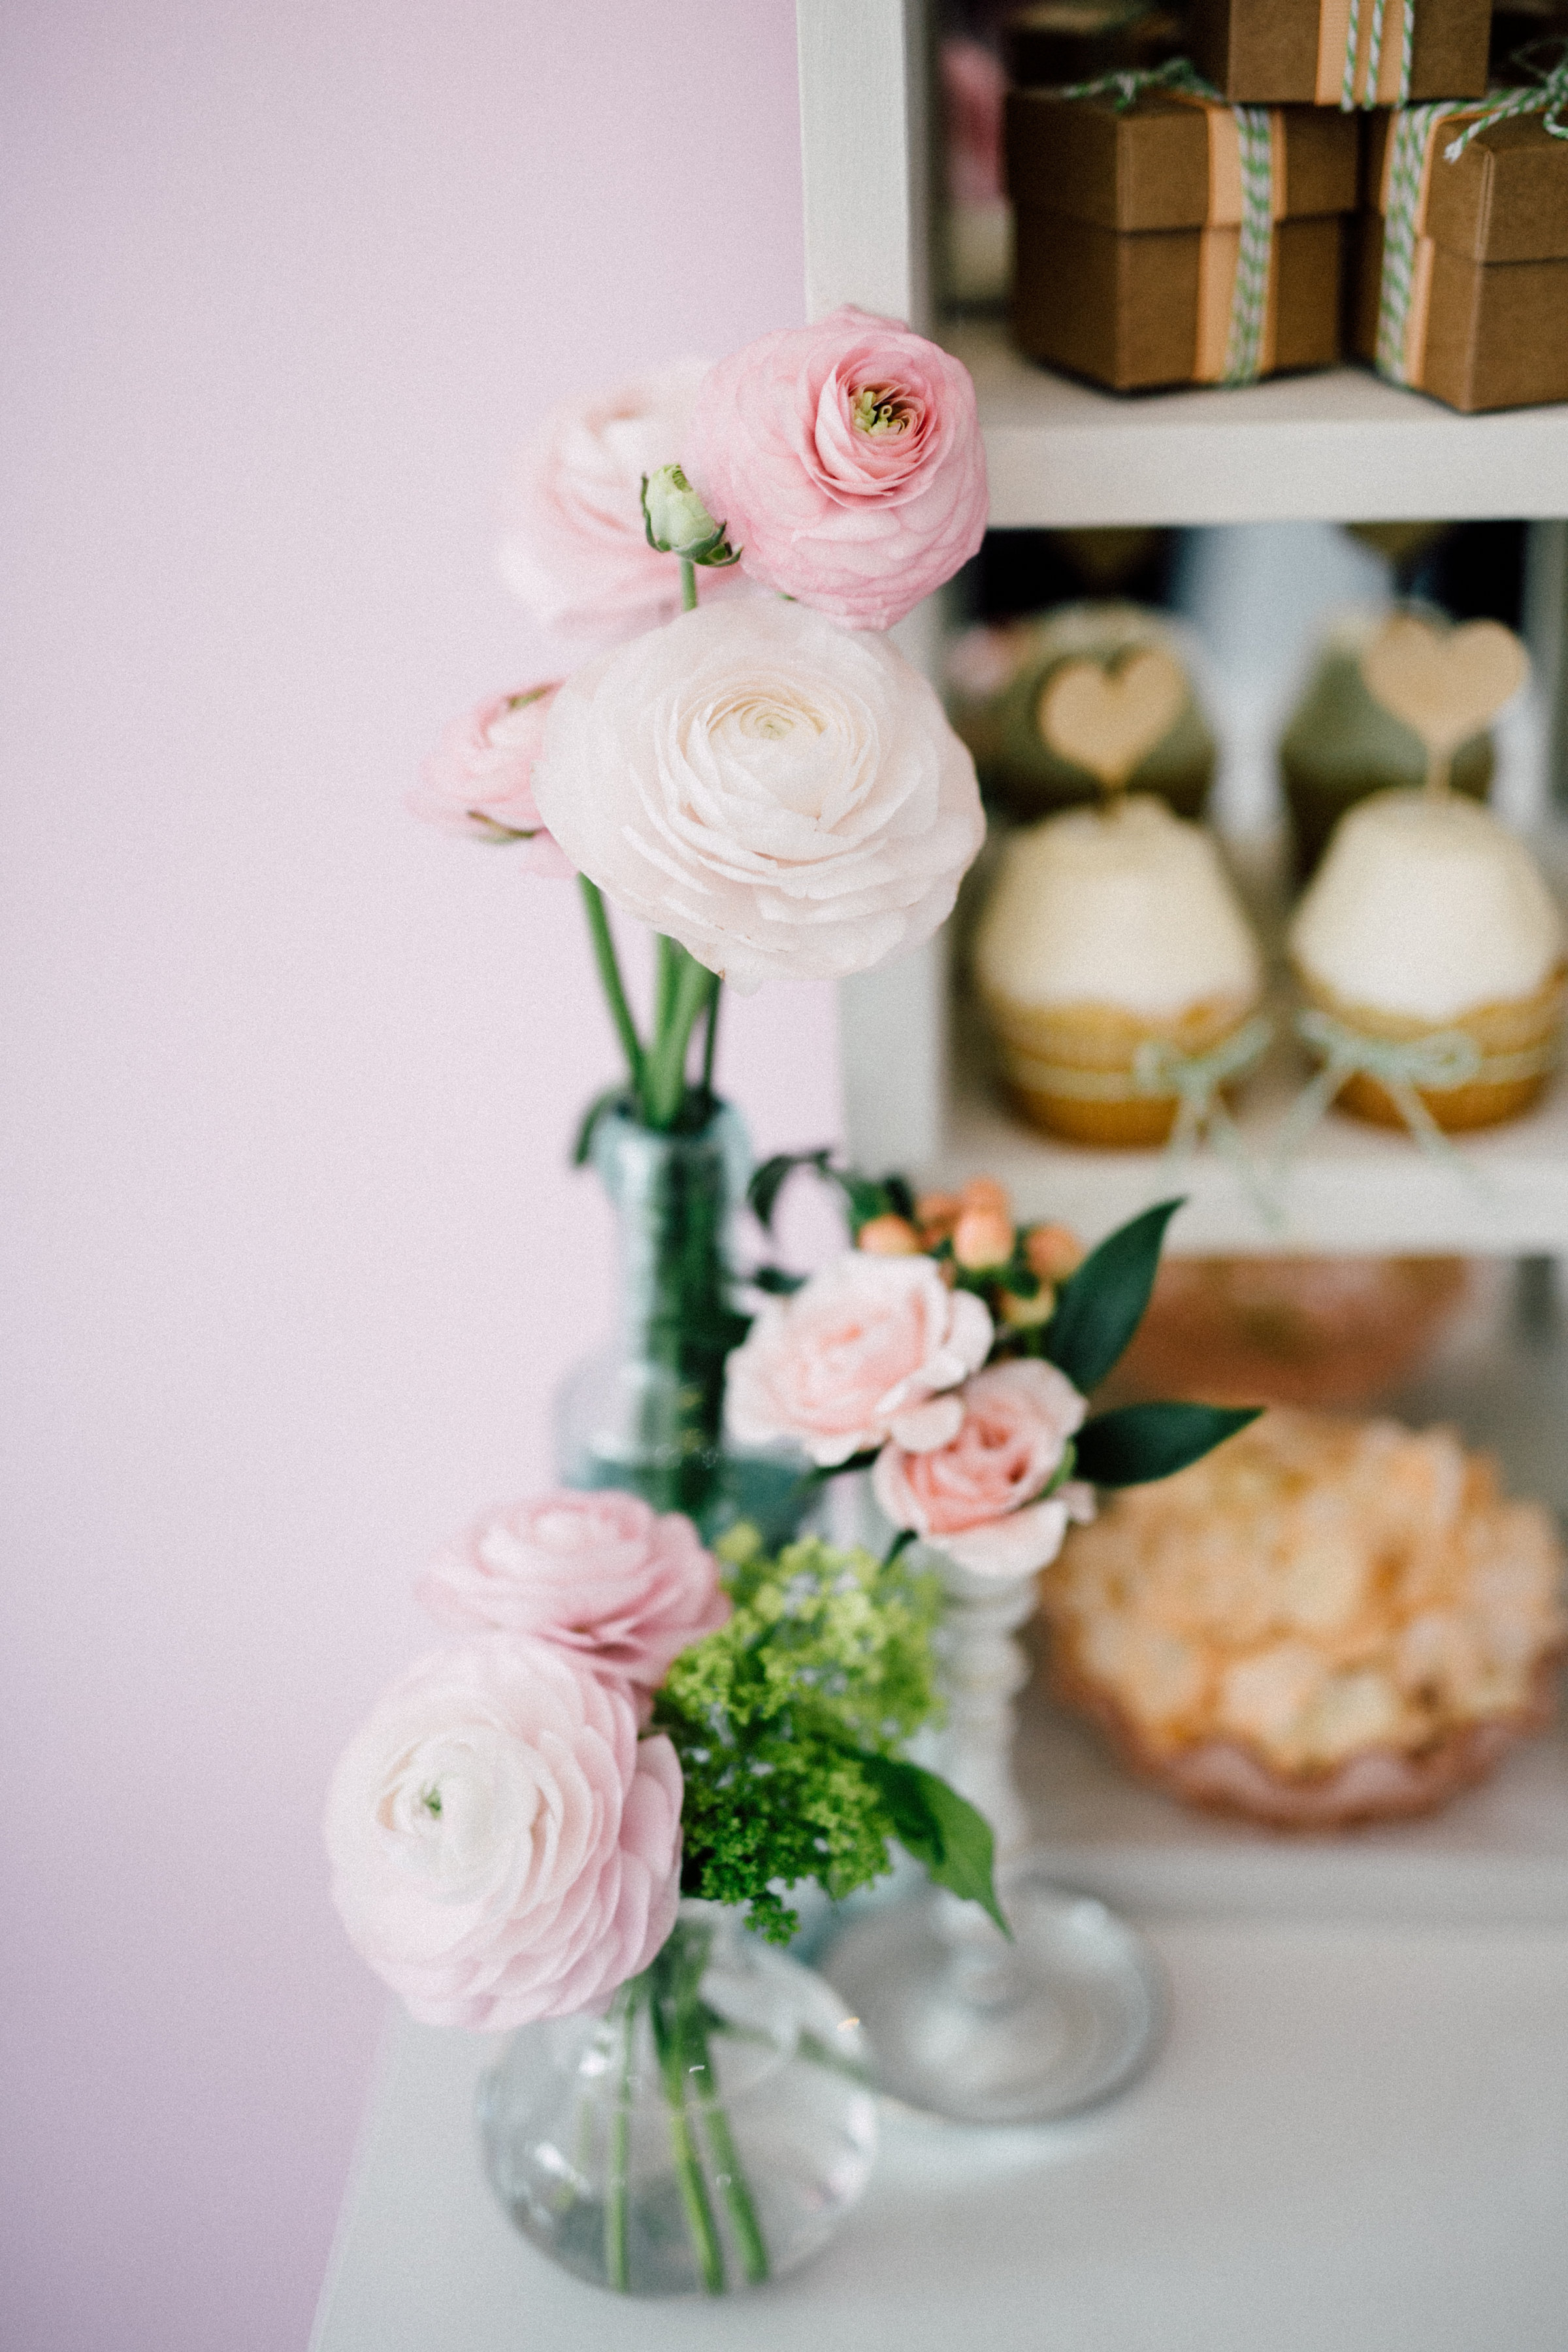 August In Bloom - Bud vases - Bun In The Oven Baby Shower (Style Me Pretty & SMP Living)